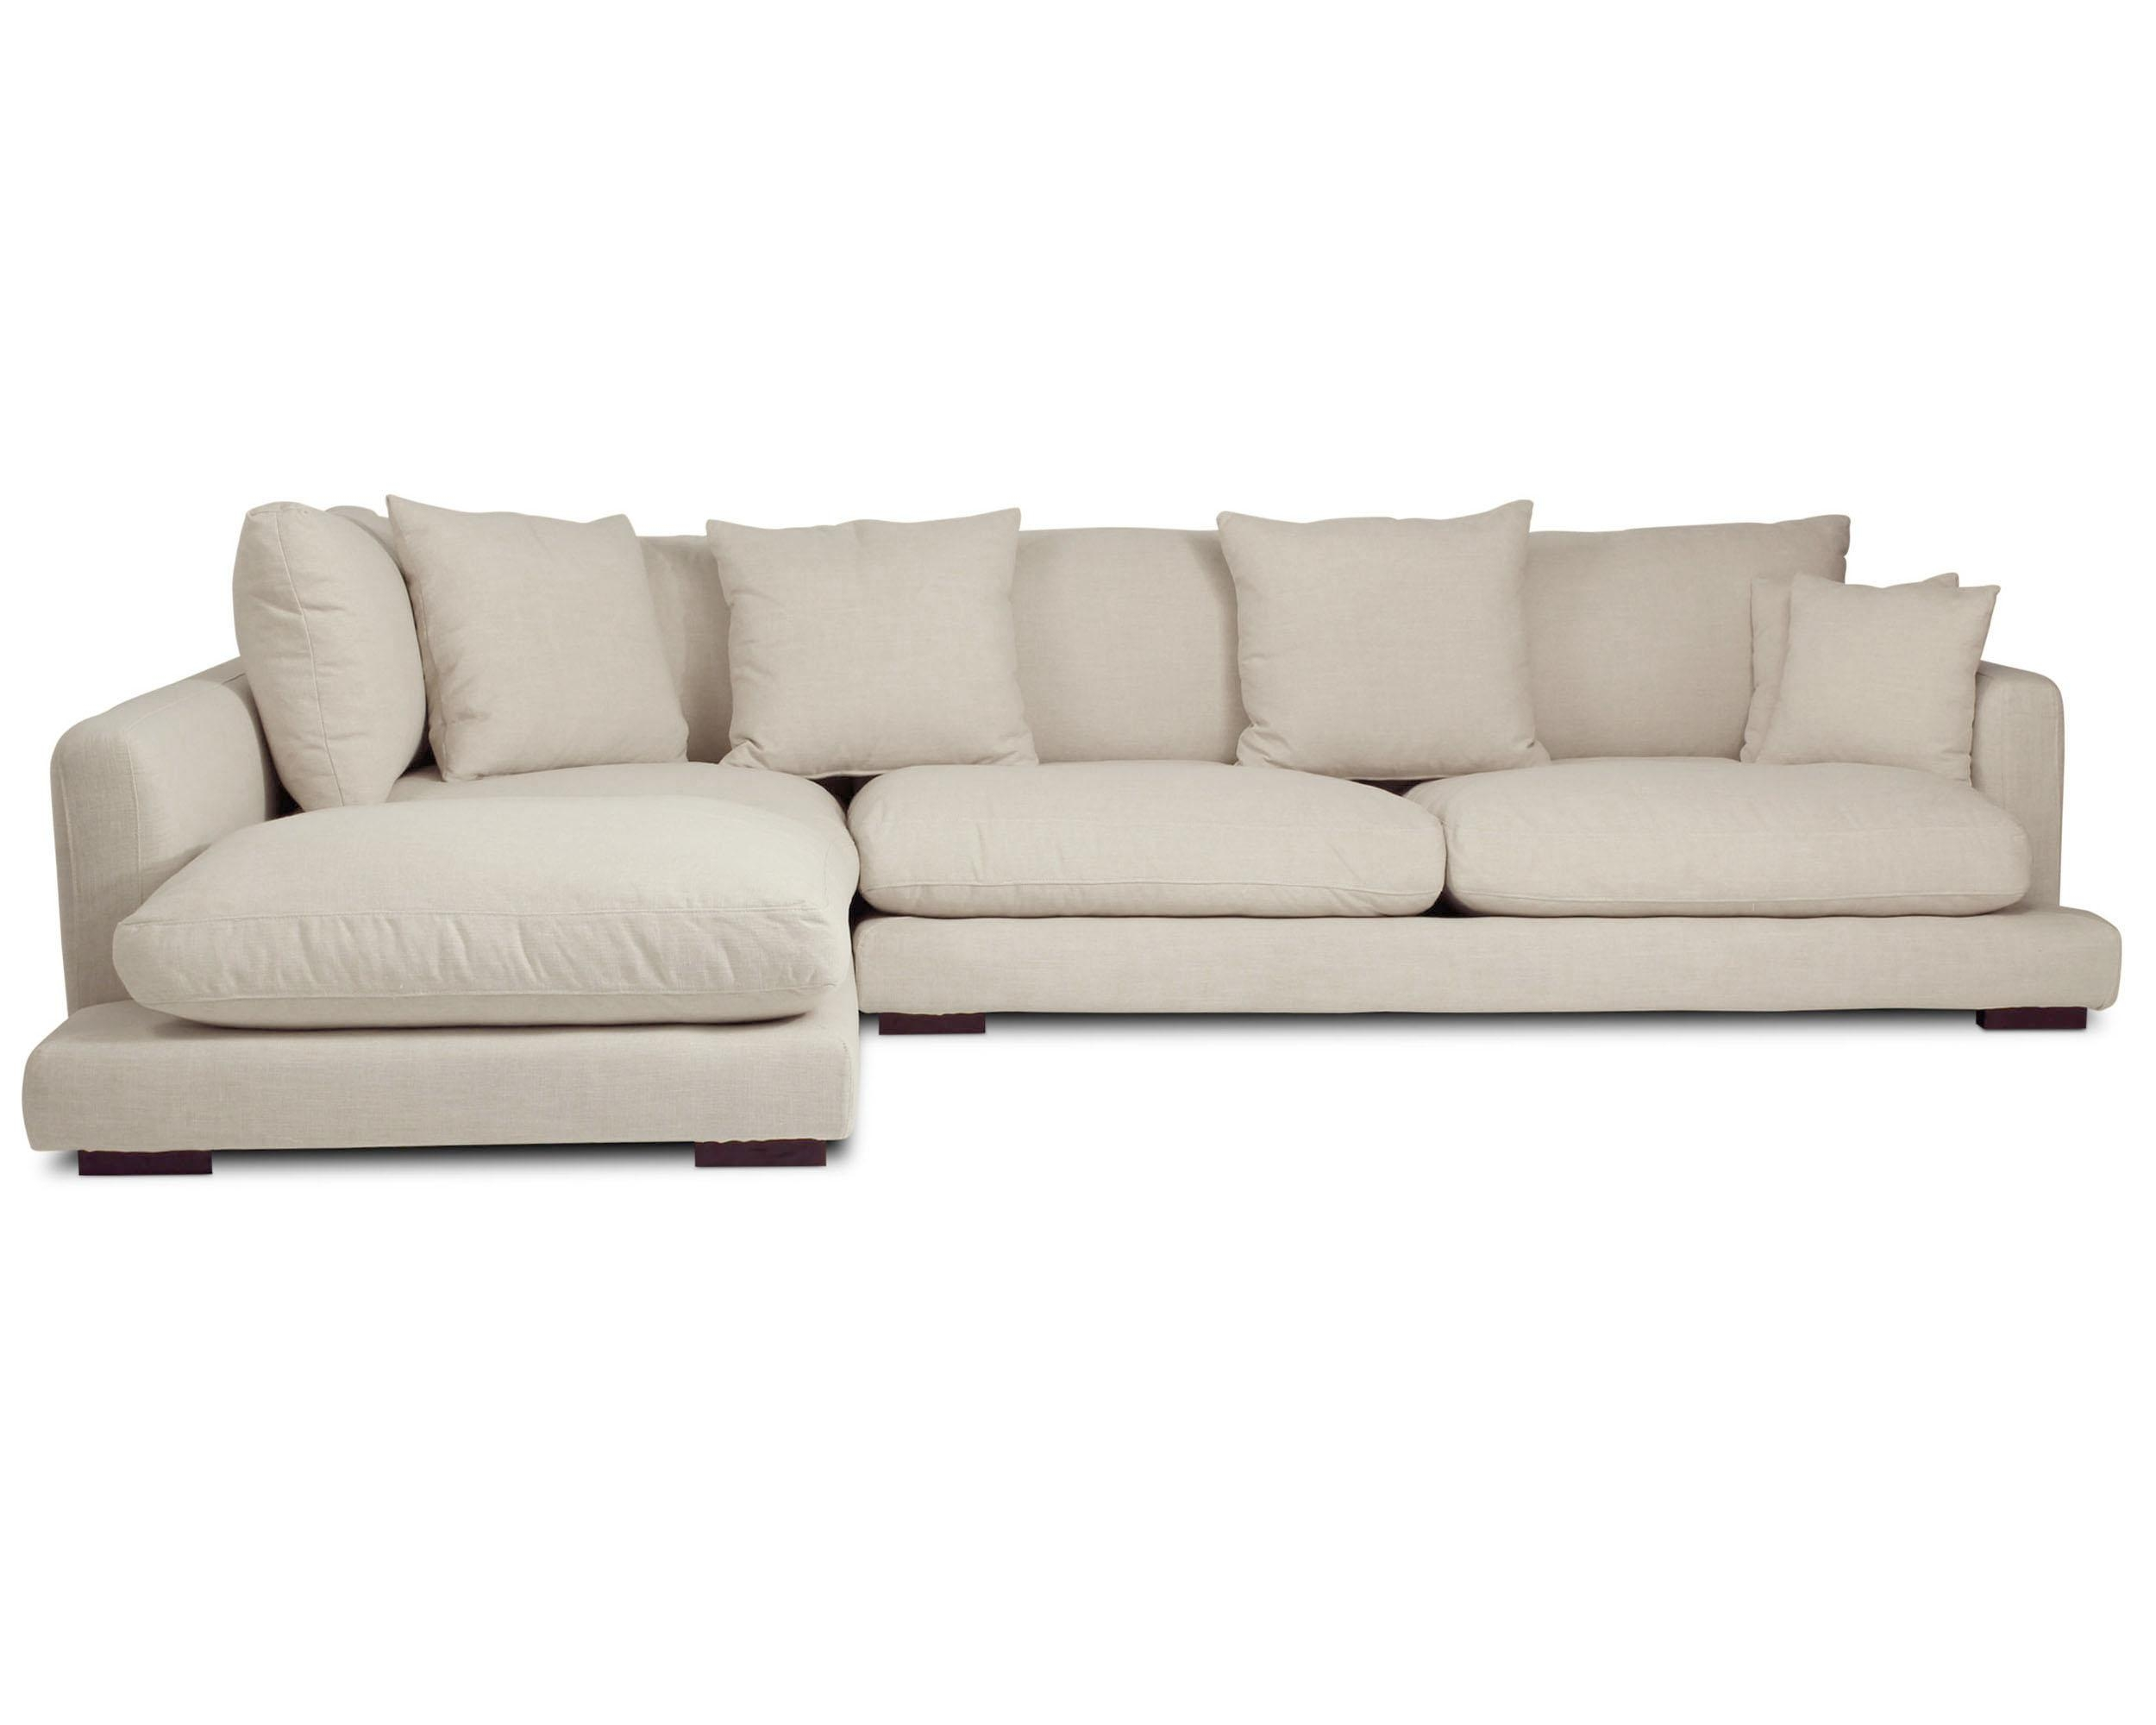 20 collection of long chaise sofa sofa ideas for How long is a loveseat